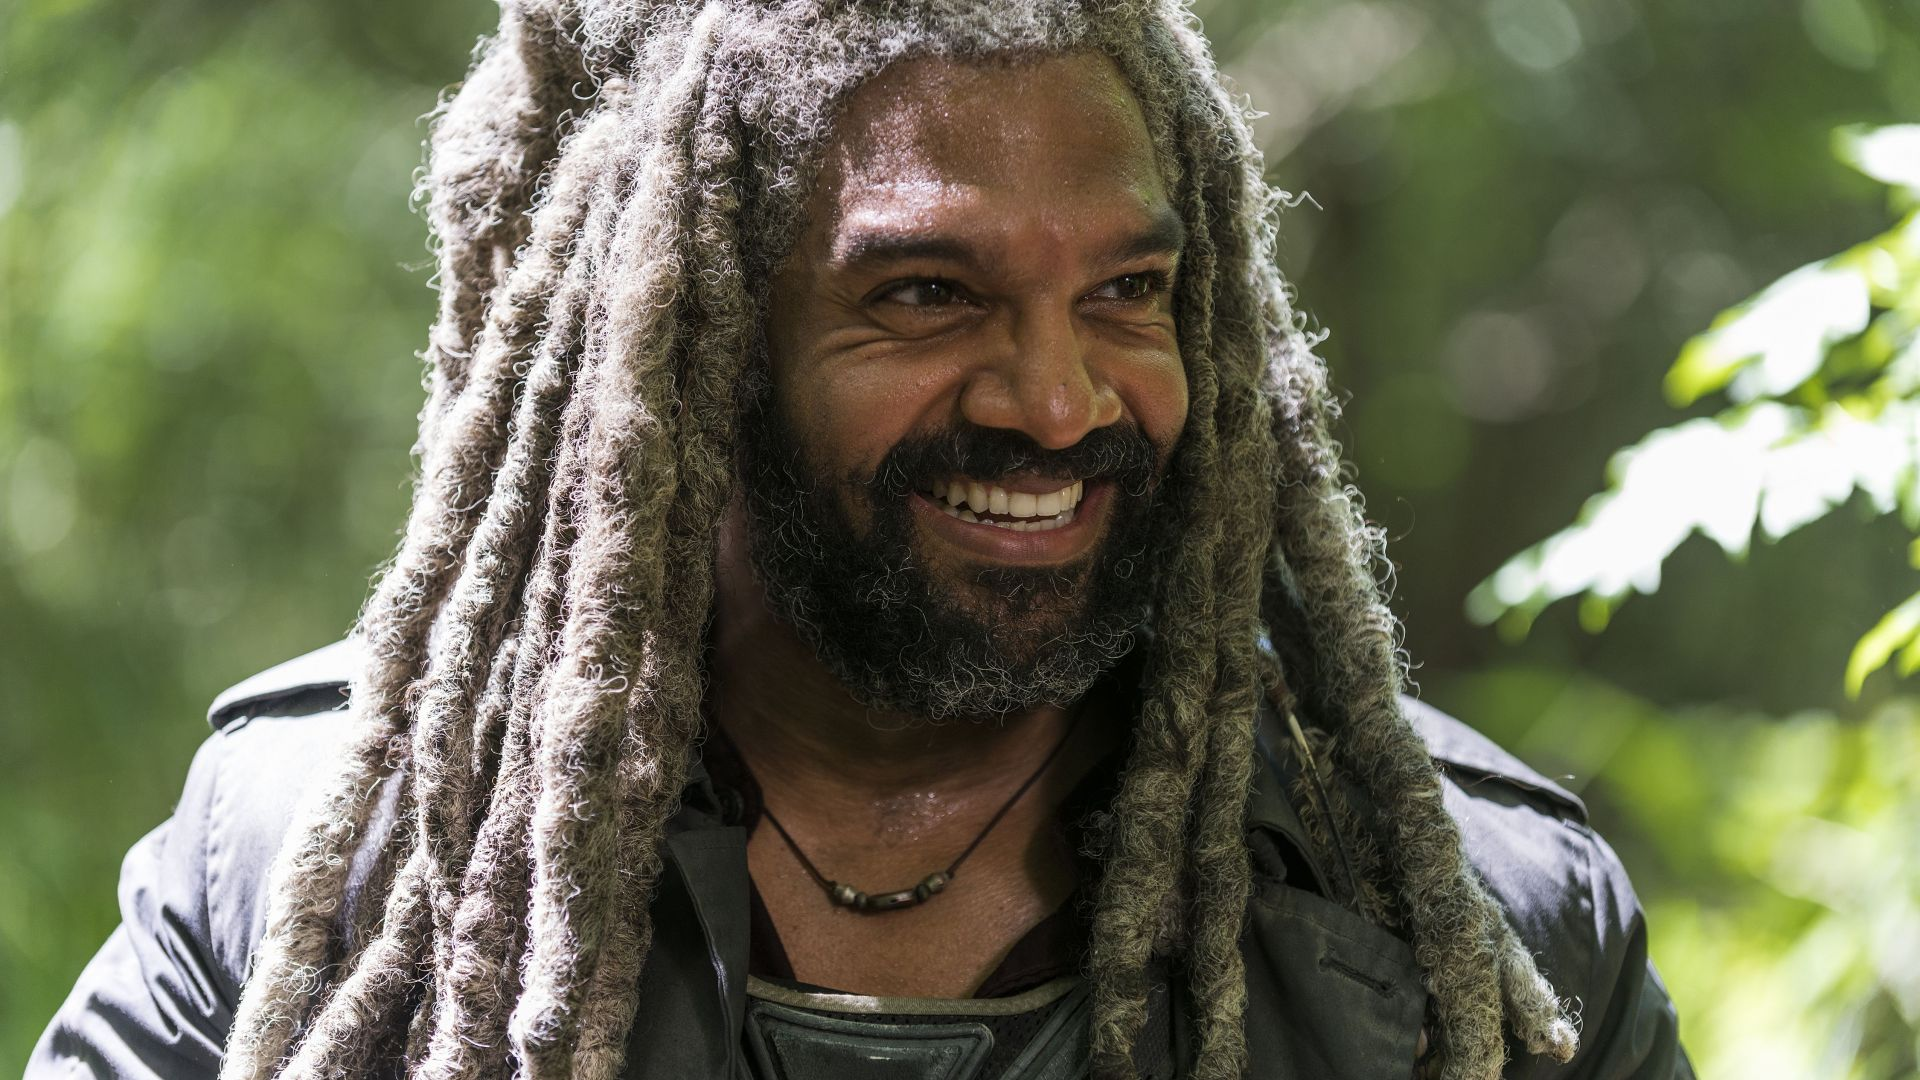 Ходячие мертвецы, The Walking Dead Season 8, Khary Payton, TV Series, 4k (horizontal)